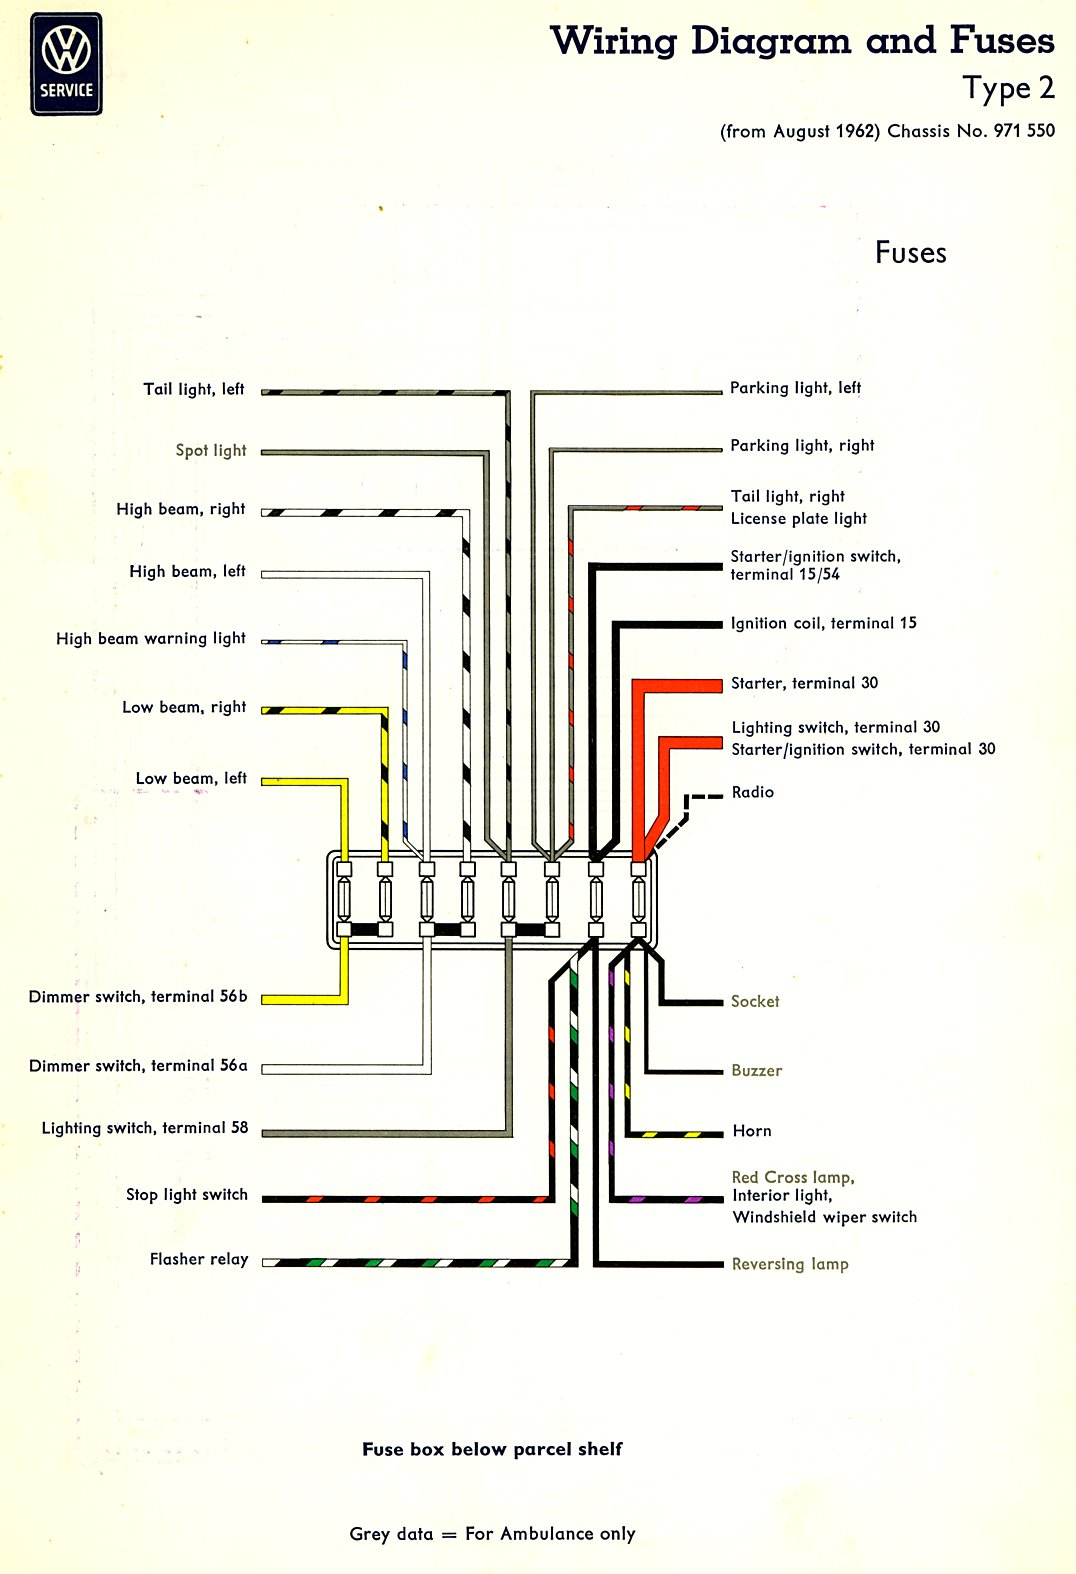 bus_63_fuses thesamba com type 2 wiring diagrams GMC Fuse Box Diagrams at mifinder.co